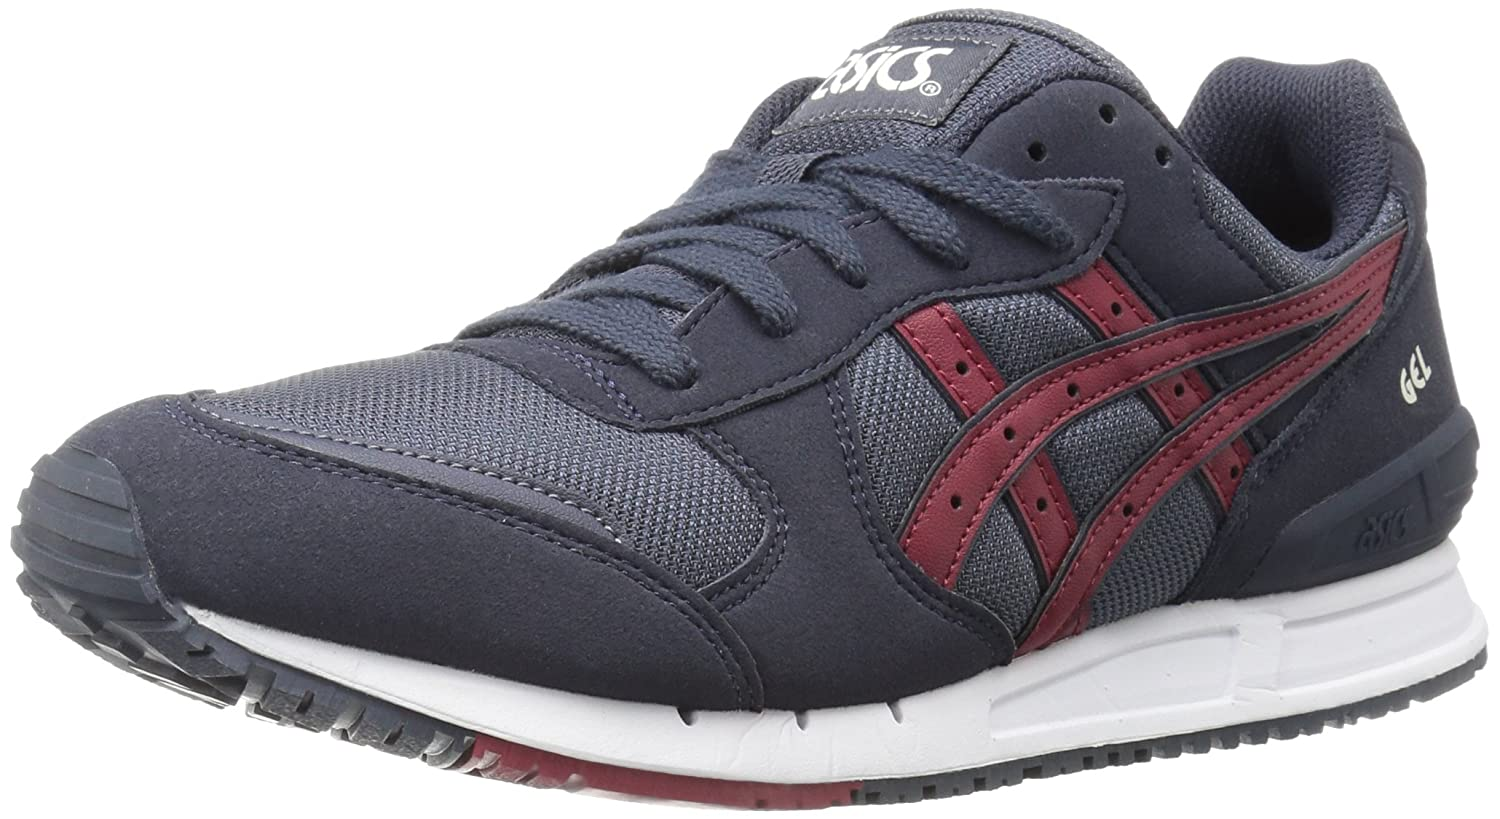 85dbb9c1 ASICS Men's Gel-Classic Fashion Sneaker, India Ink/Burgundy, 4.5 M US